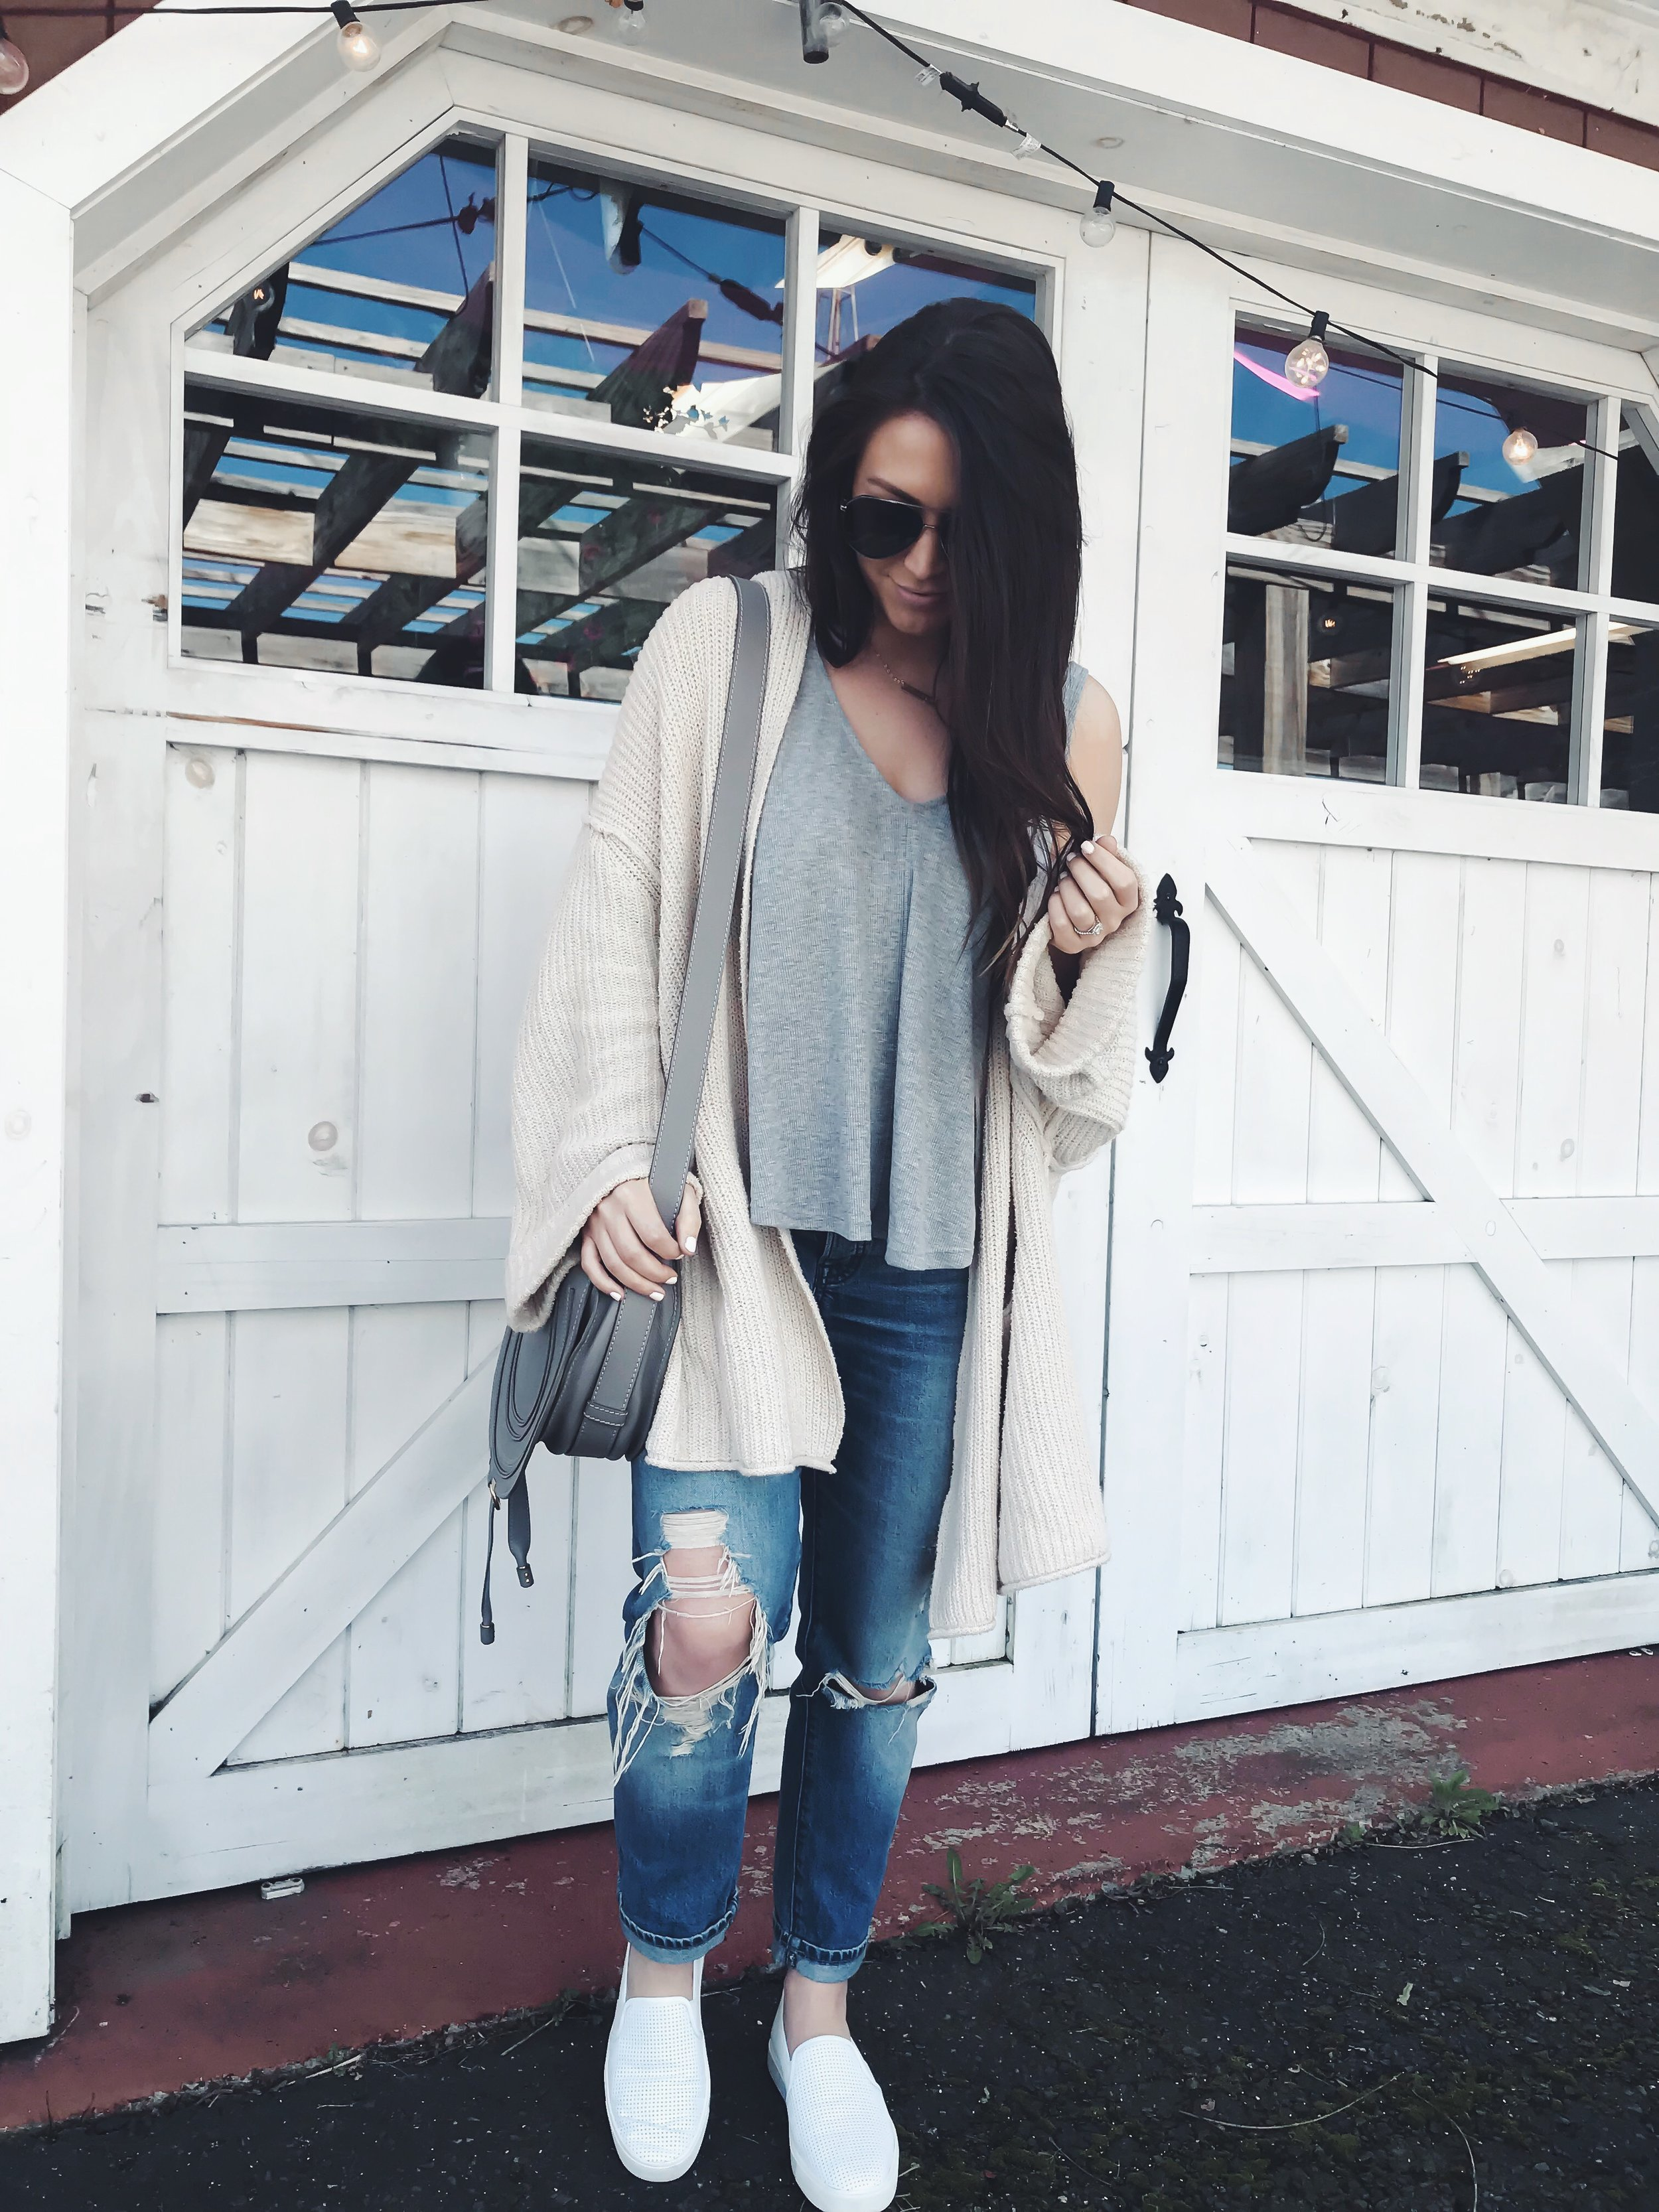 Instagram Round Up + Current Sales | Pine Barren Beauty | outfit of the day, outfit details, spring outfit, free people tank, cozy cardigan, Vince slip on sneakers, distressed denim